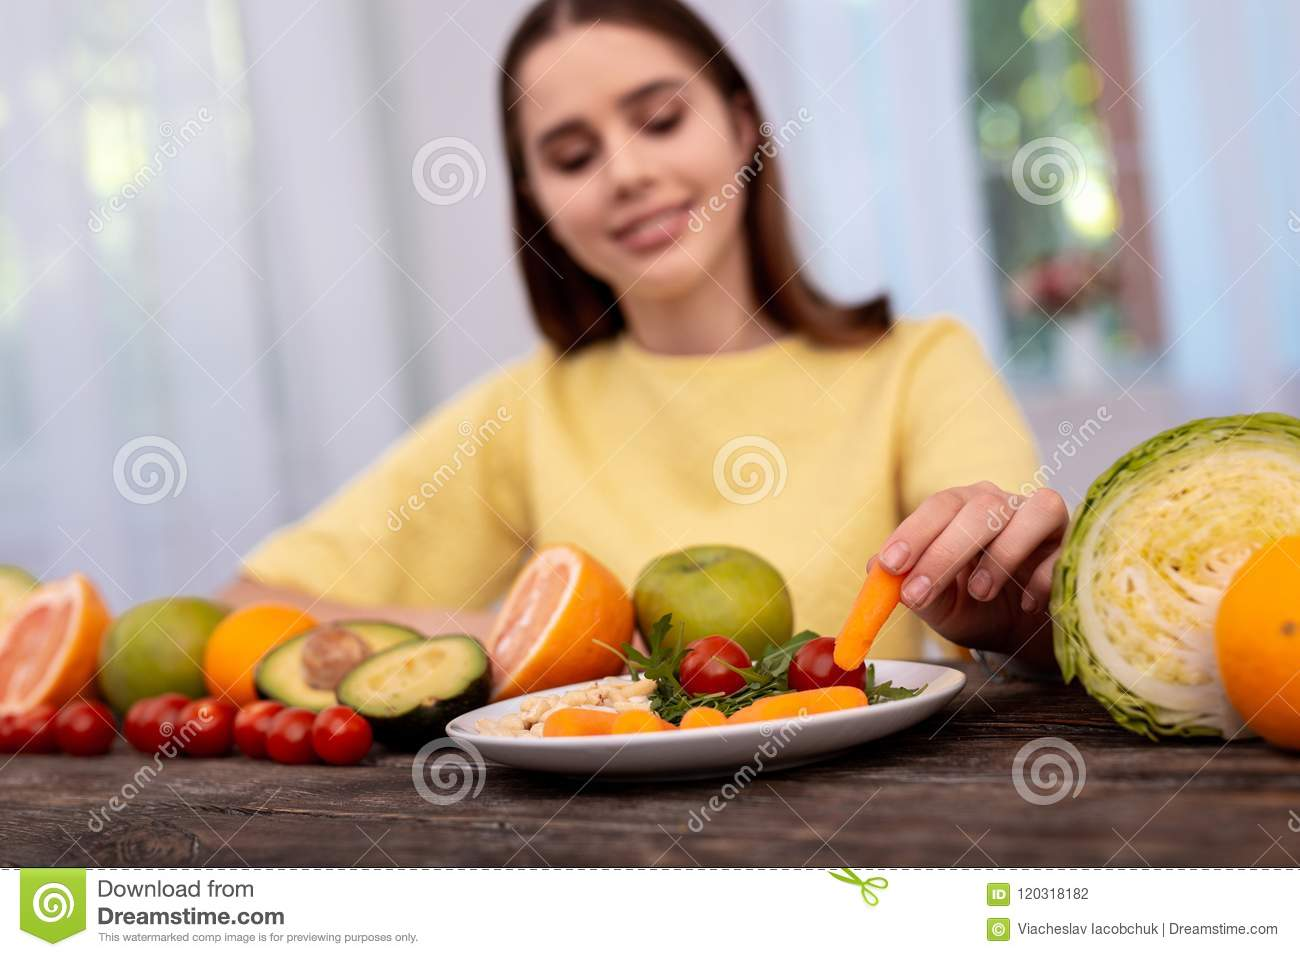 girl-teen-covered-with-vegetables-fila-negros-interracialtures